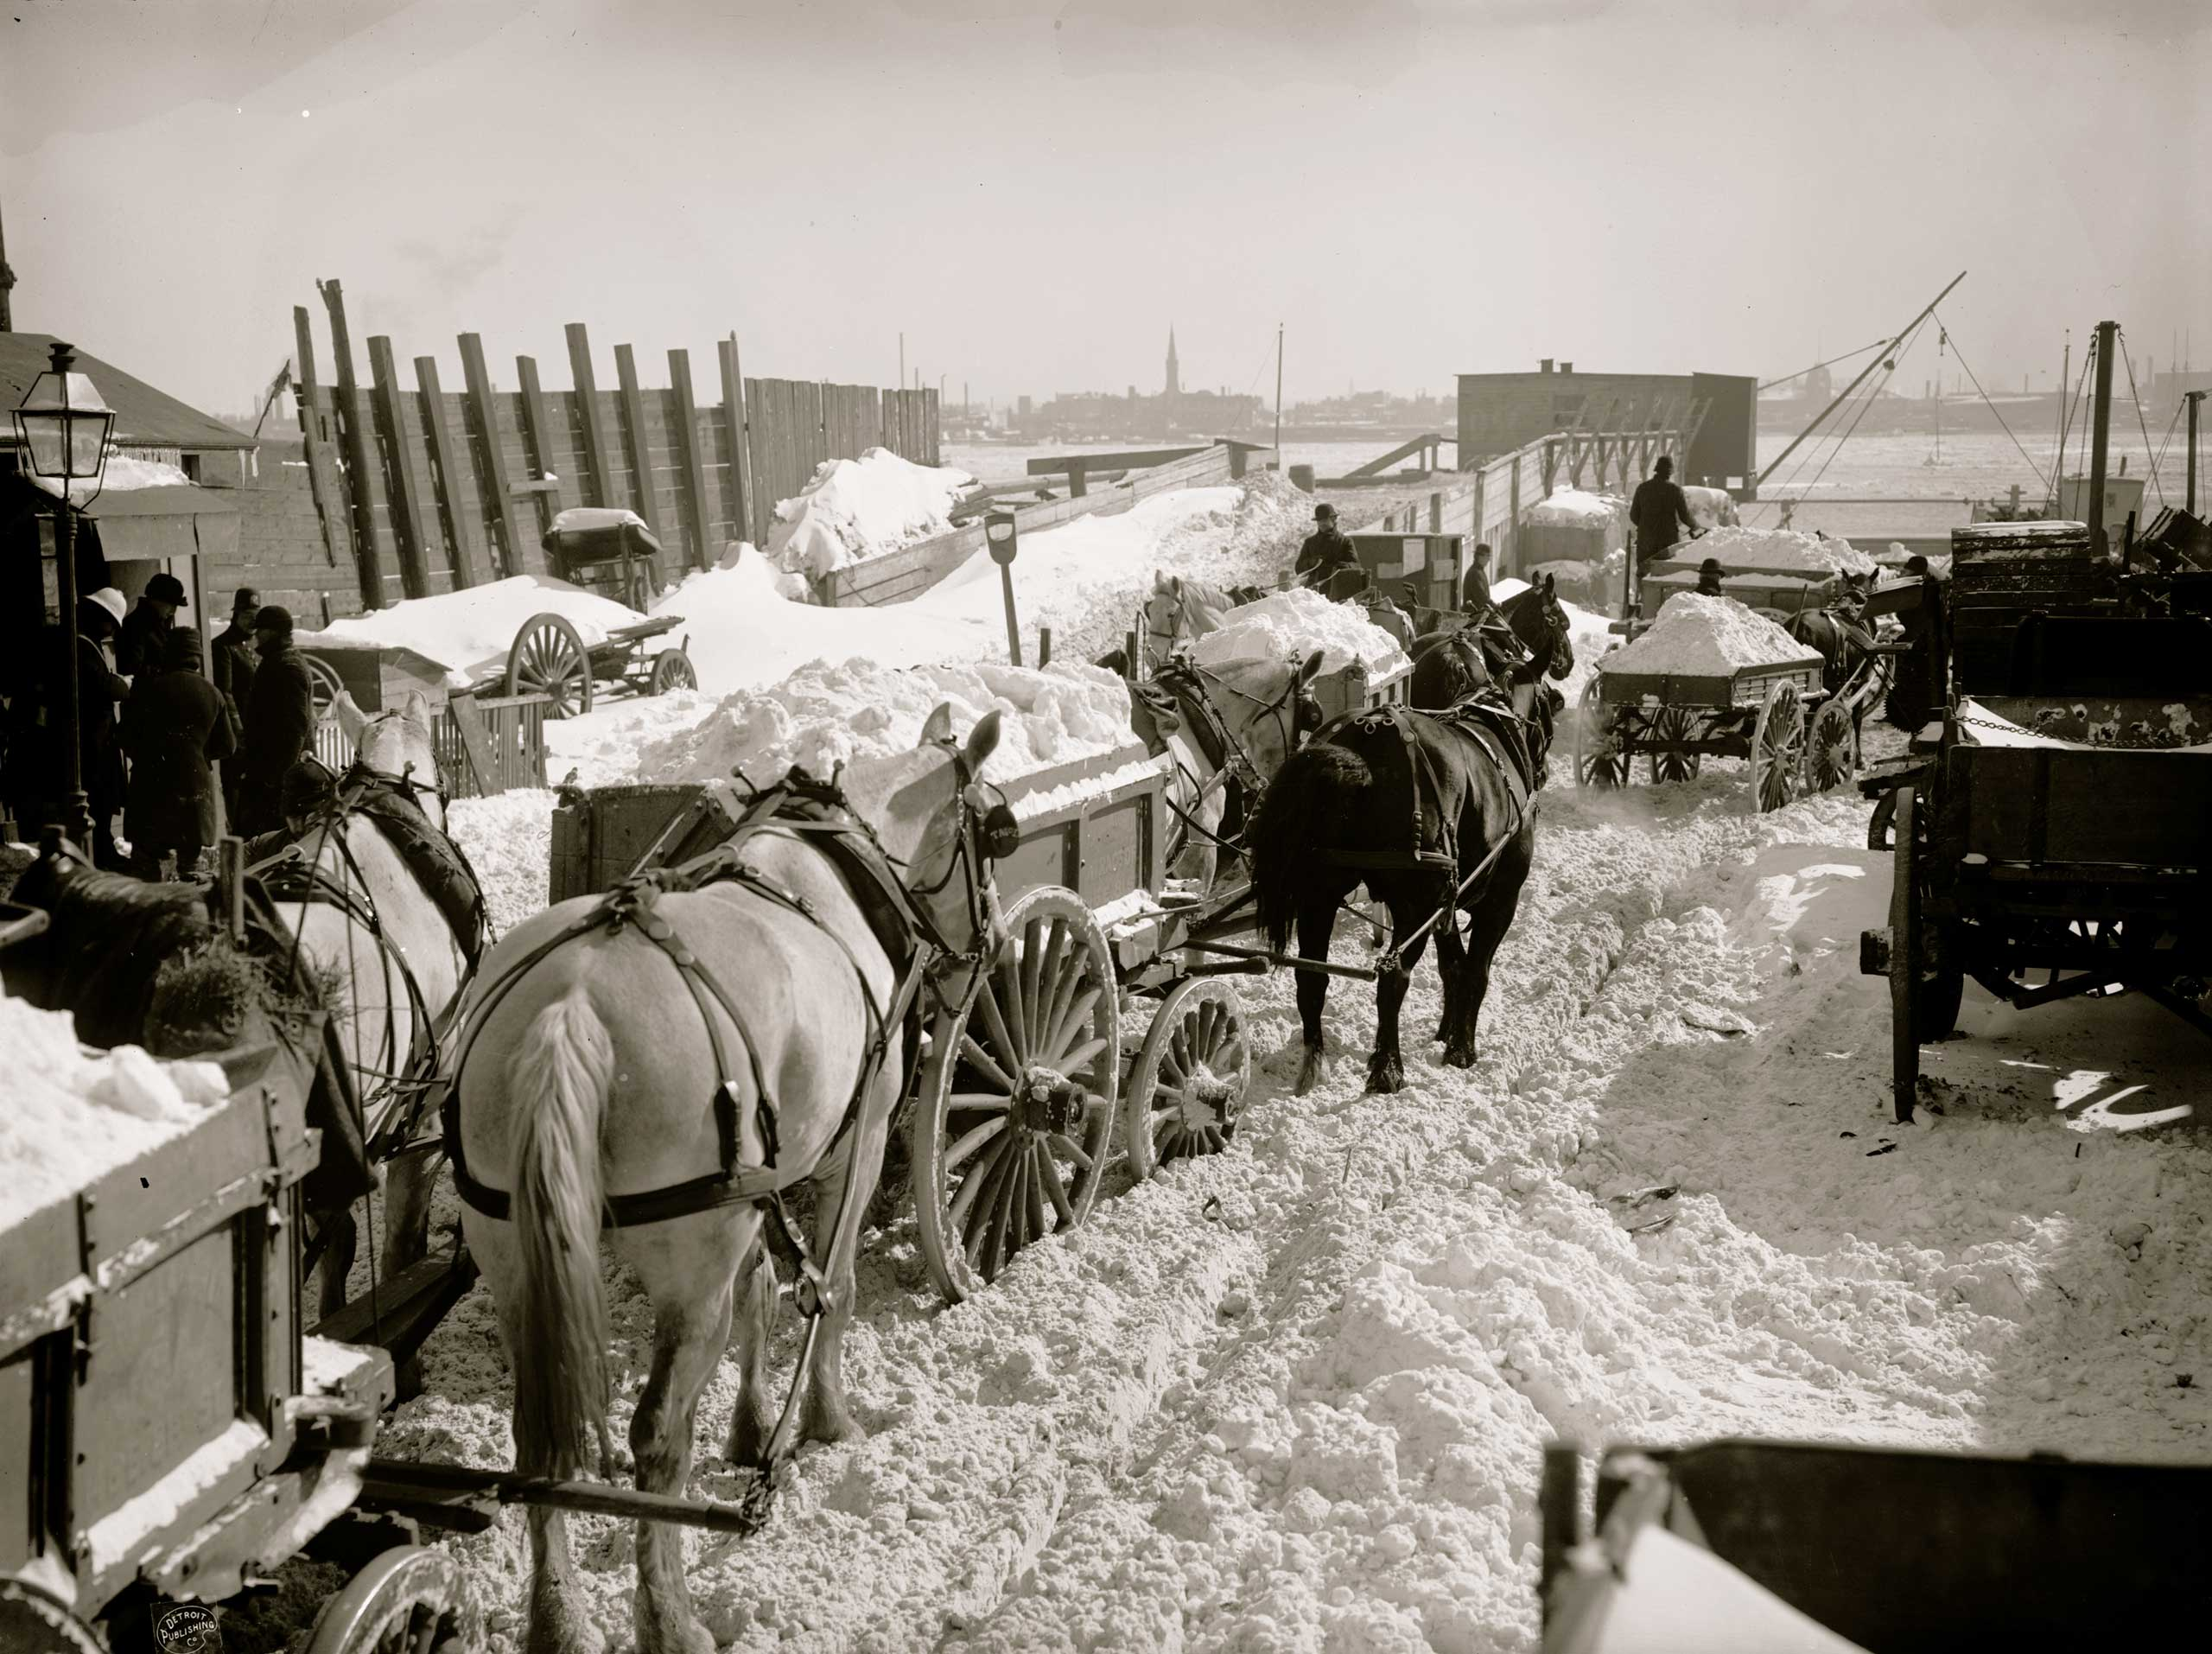 <b>The Blizzard of 1888 (March 11-12, 1888)</b> This late-in-the-season snowstorm devastated much of the East Coast, incapacitating New York City, Boston, Washington and Philadelphia with up to 50 inches of snow. Here, carts haul excess snow and ice from city streets for dumping in the East River in New York City.